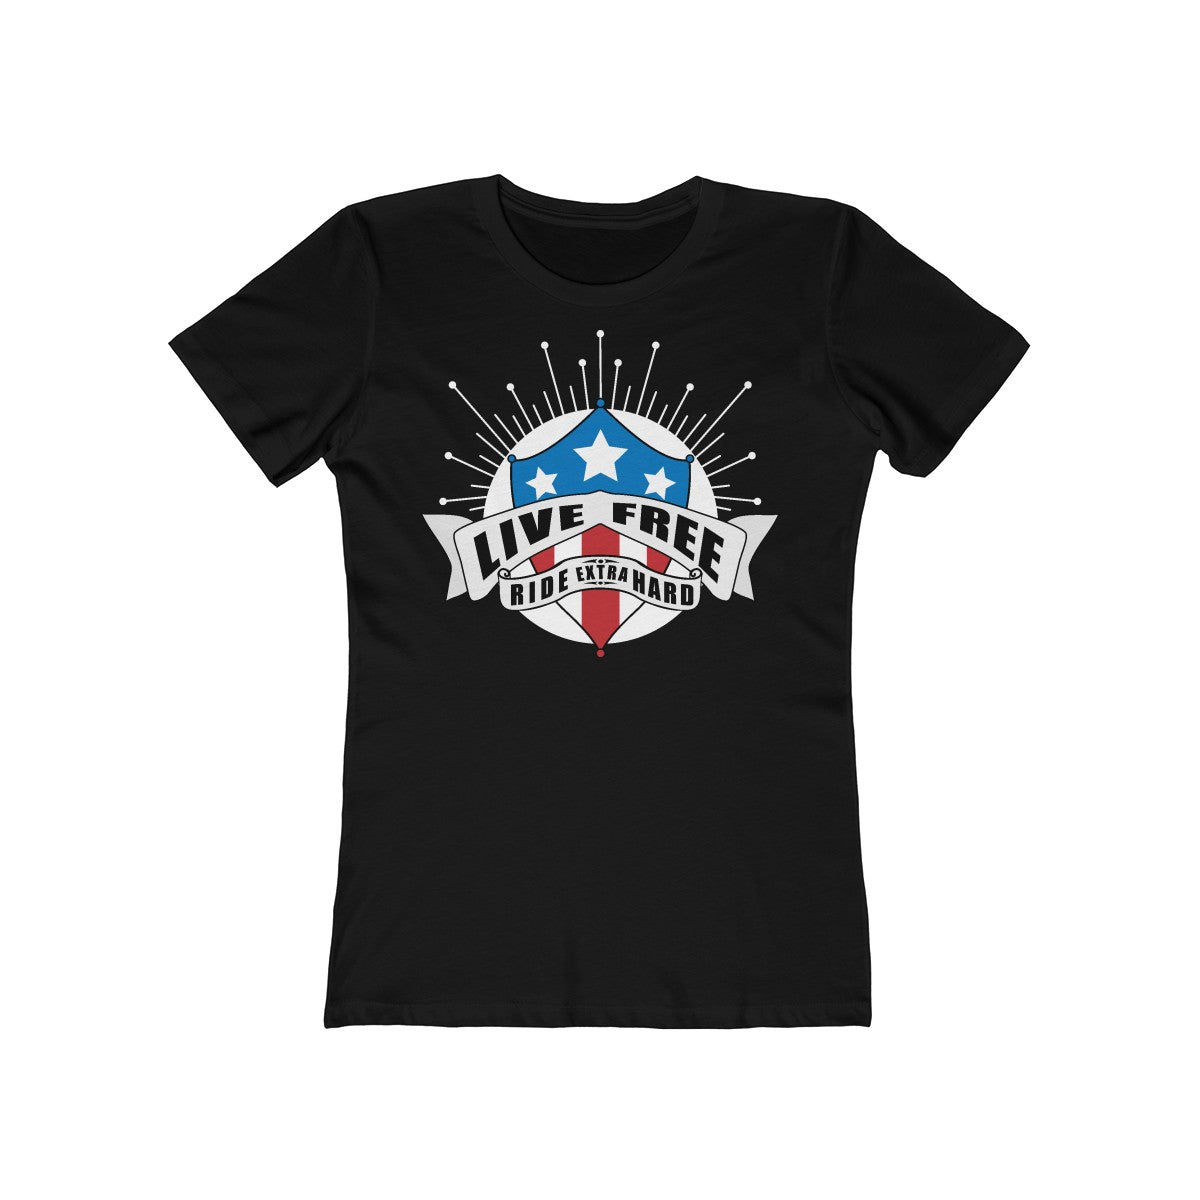 Live Free & Ride - Women's T-Shirt